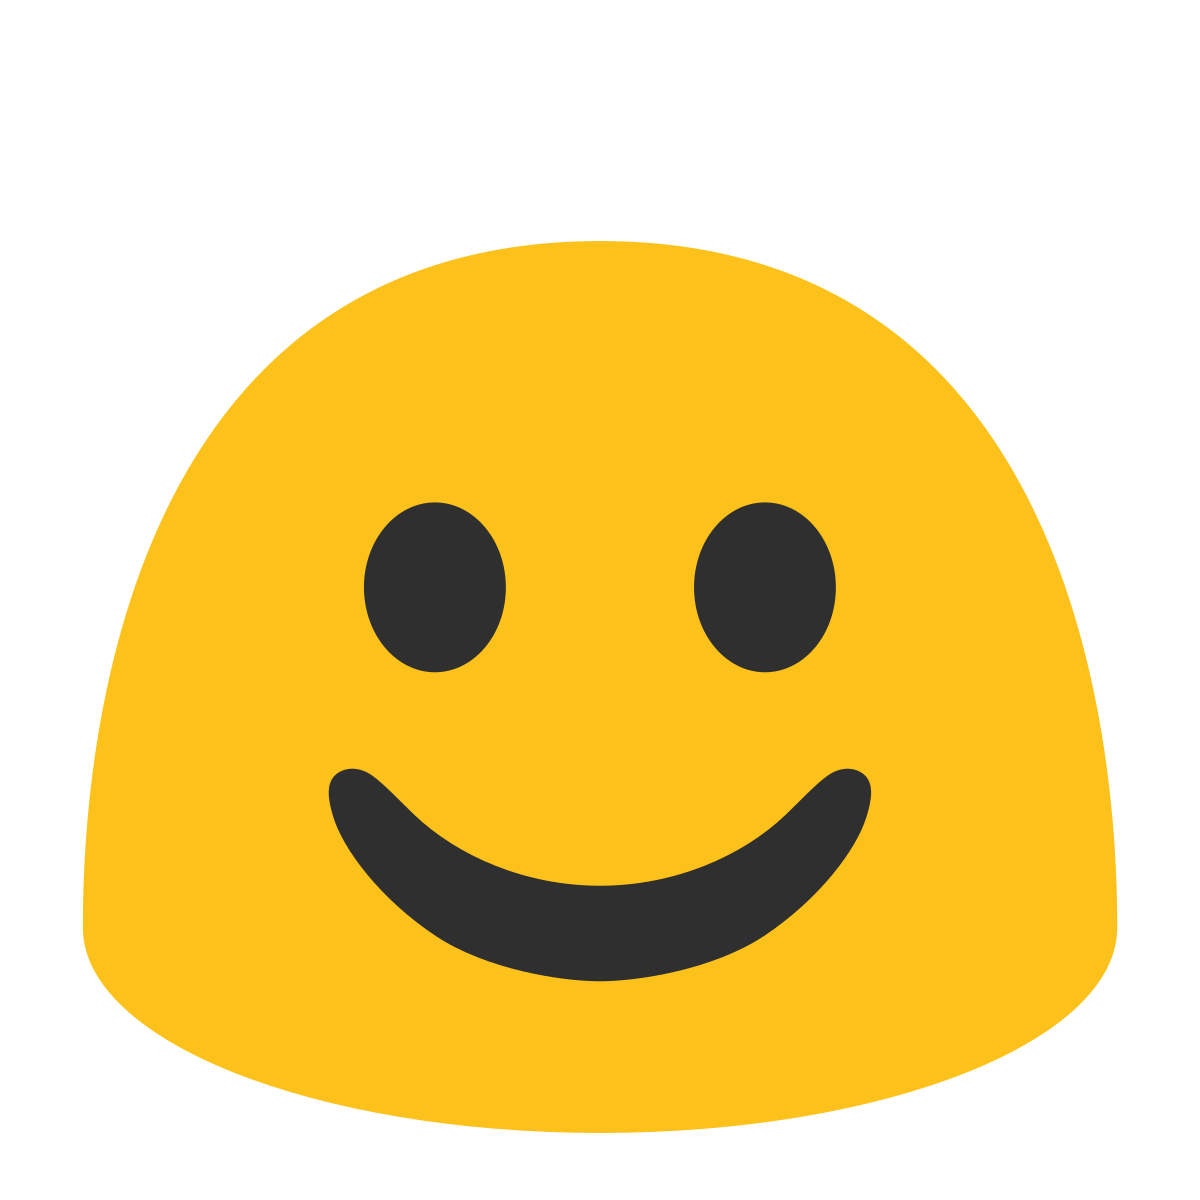 Crying smiley png. Emoji emoticon noto fonts